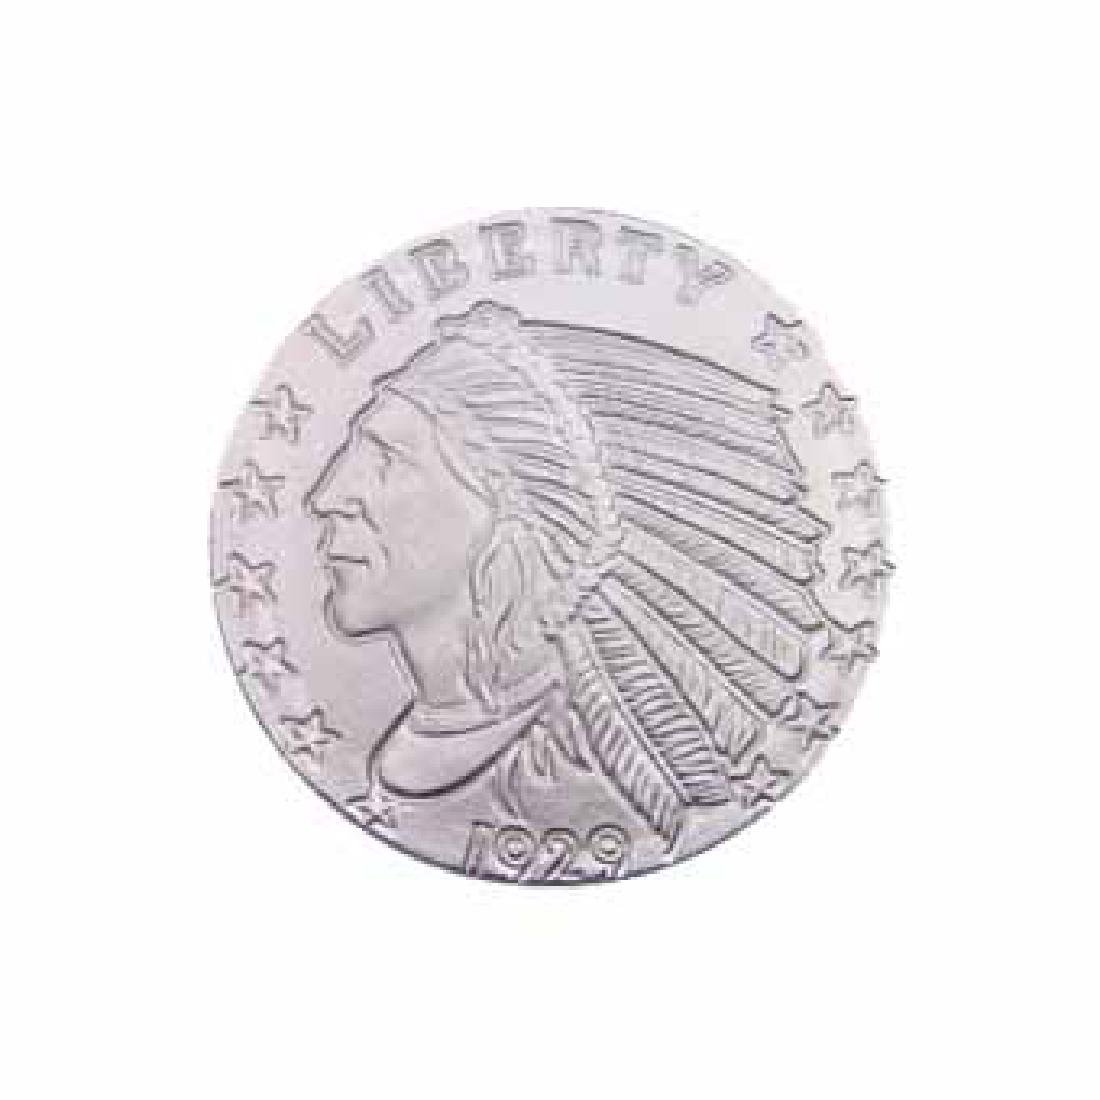 Silver Bullion 1/10 oz Incuse Indian Round .999 Fine